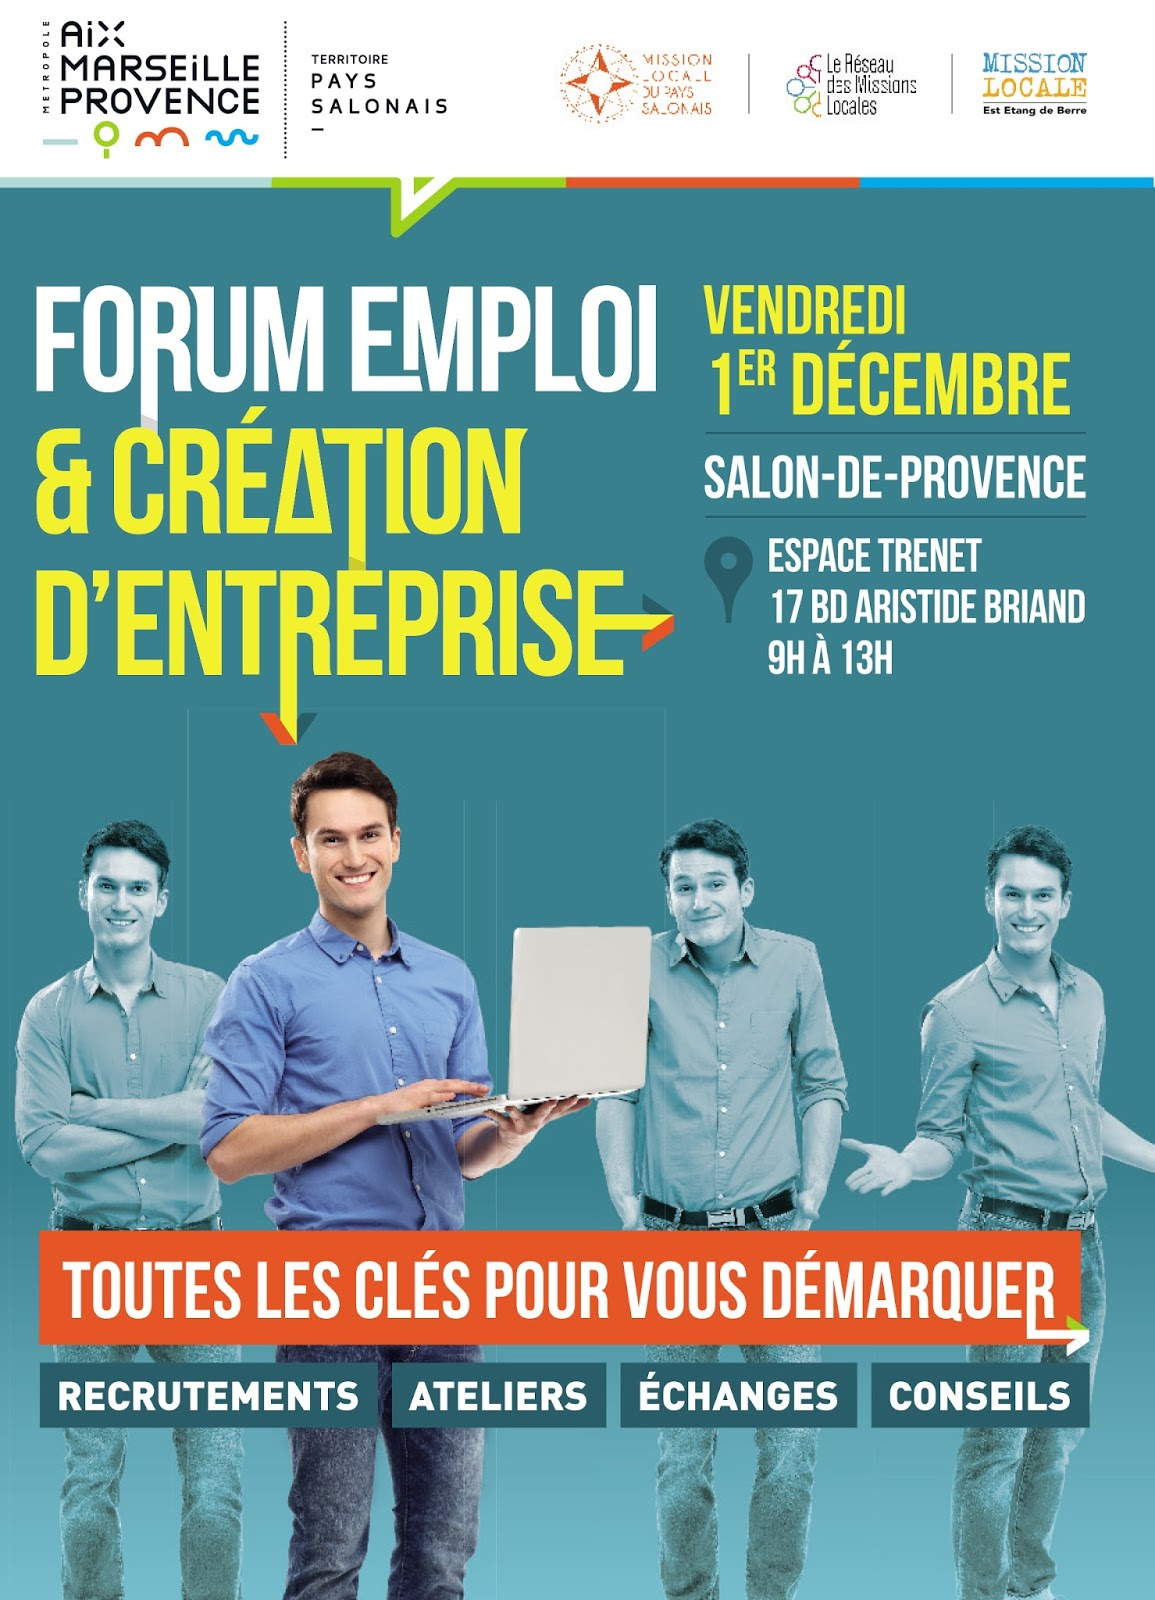 Forum emploi cr ation d 39 entreprise vendredi 1er for Meteo salon de pce